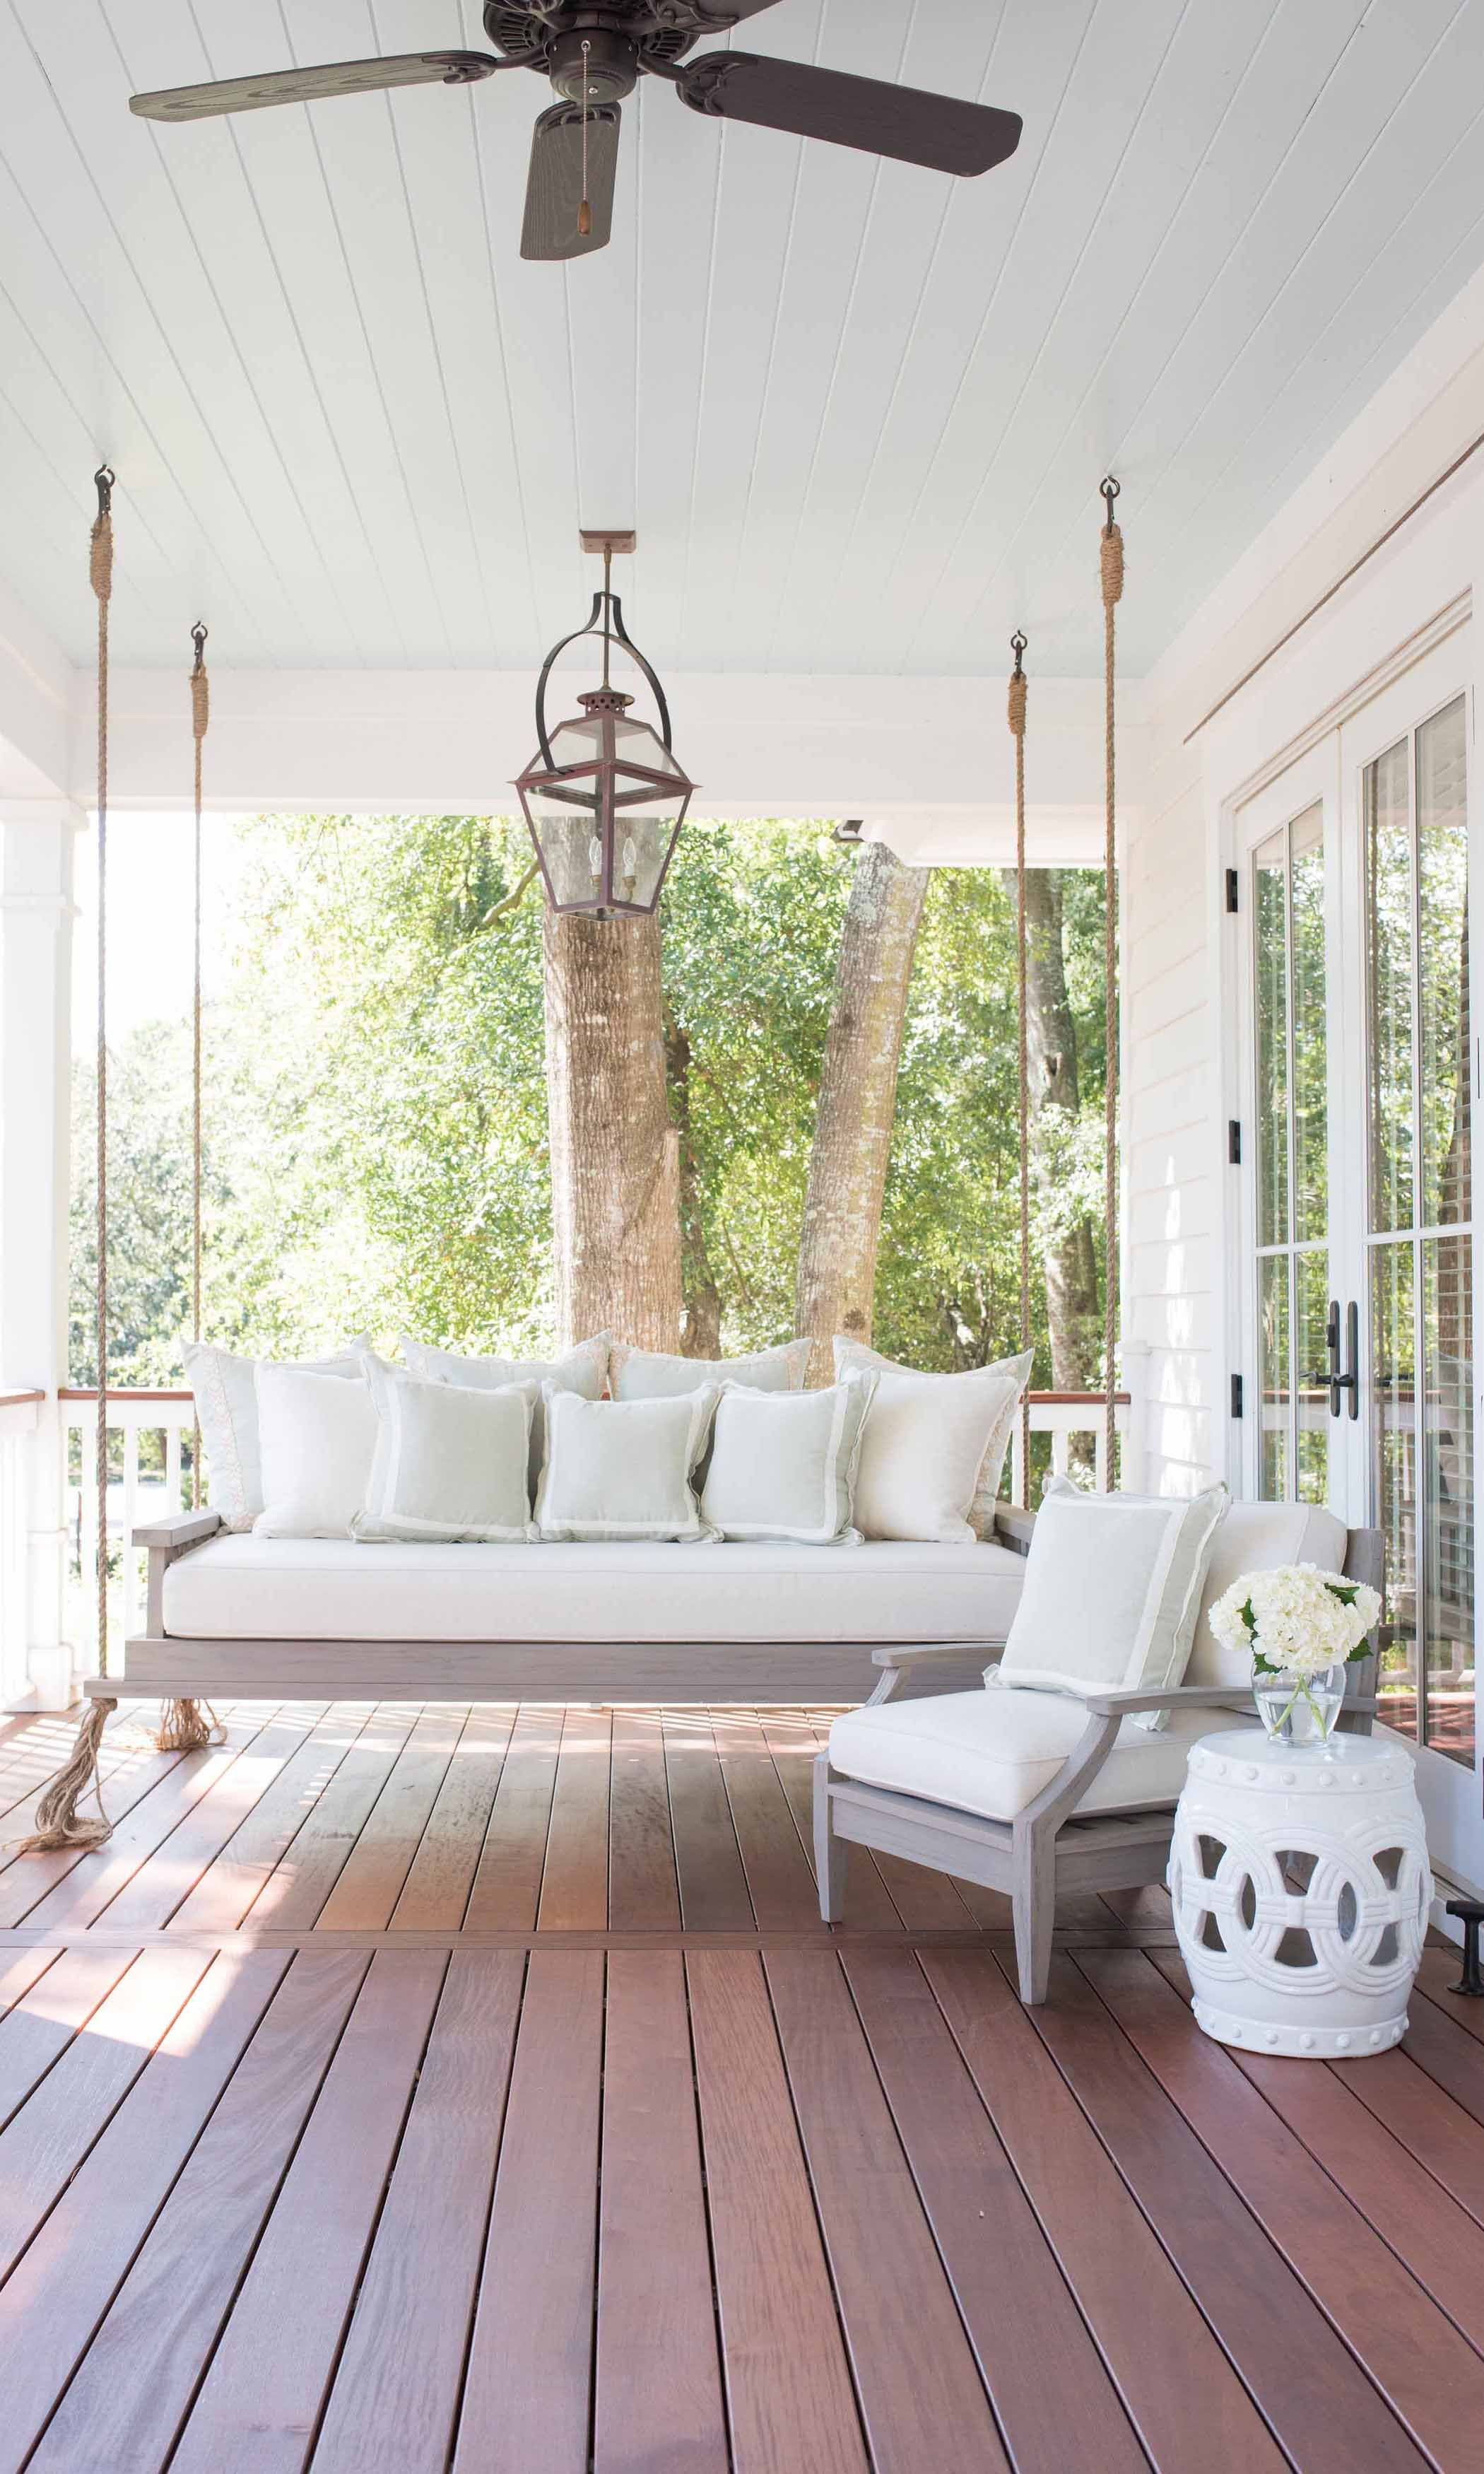 Southern Home Decor Inspiration | chats Savannah, Designers and Eye